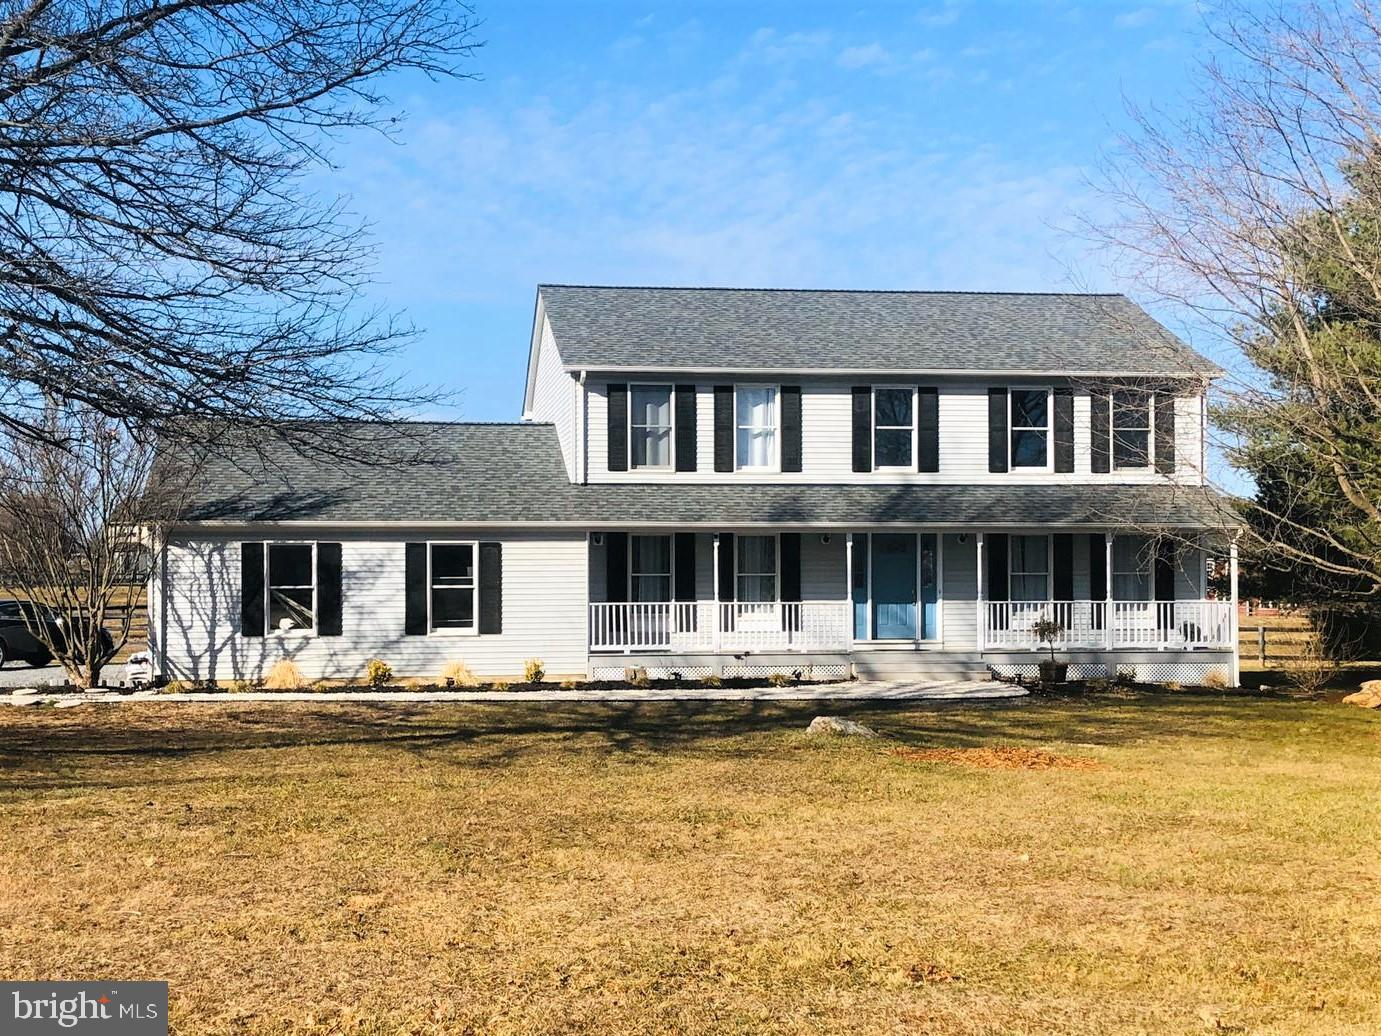 Gorgeous House on 5 Acres in the Equestrian Community of Blue Ridge Estates. All Fenced around. This